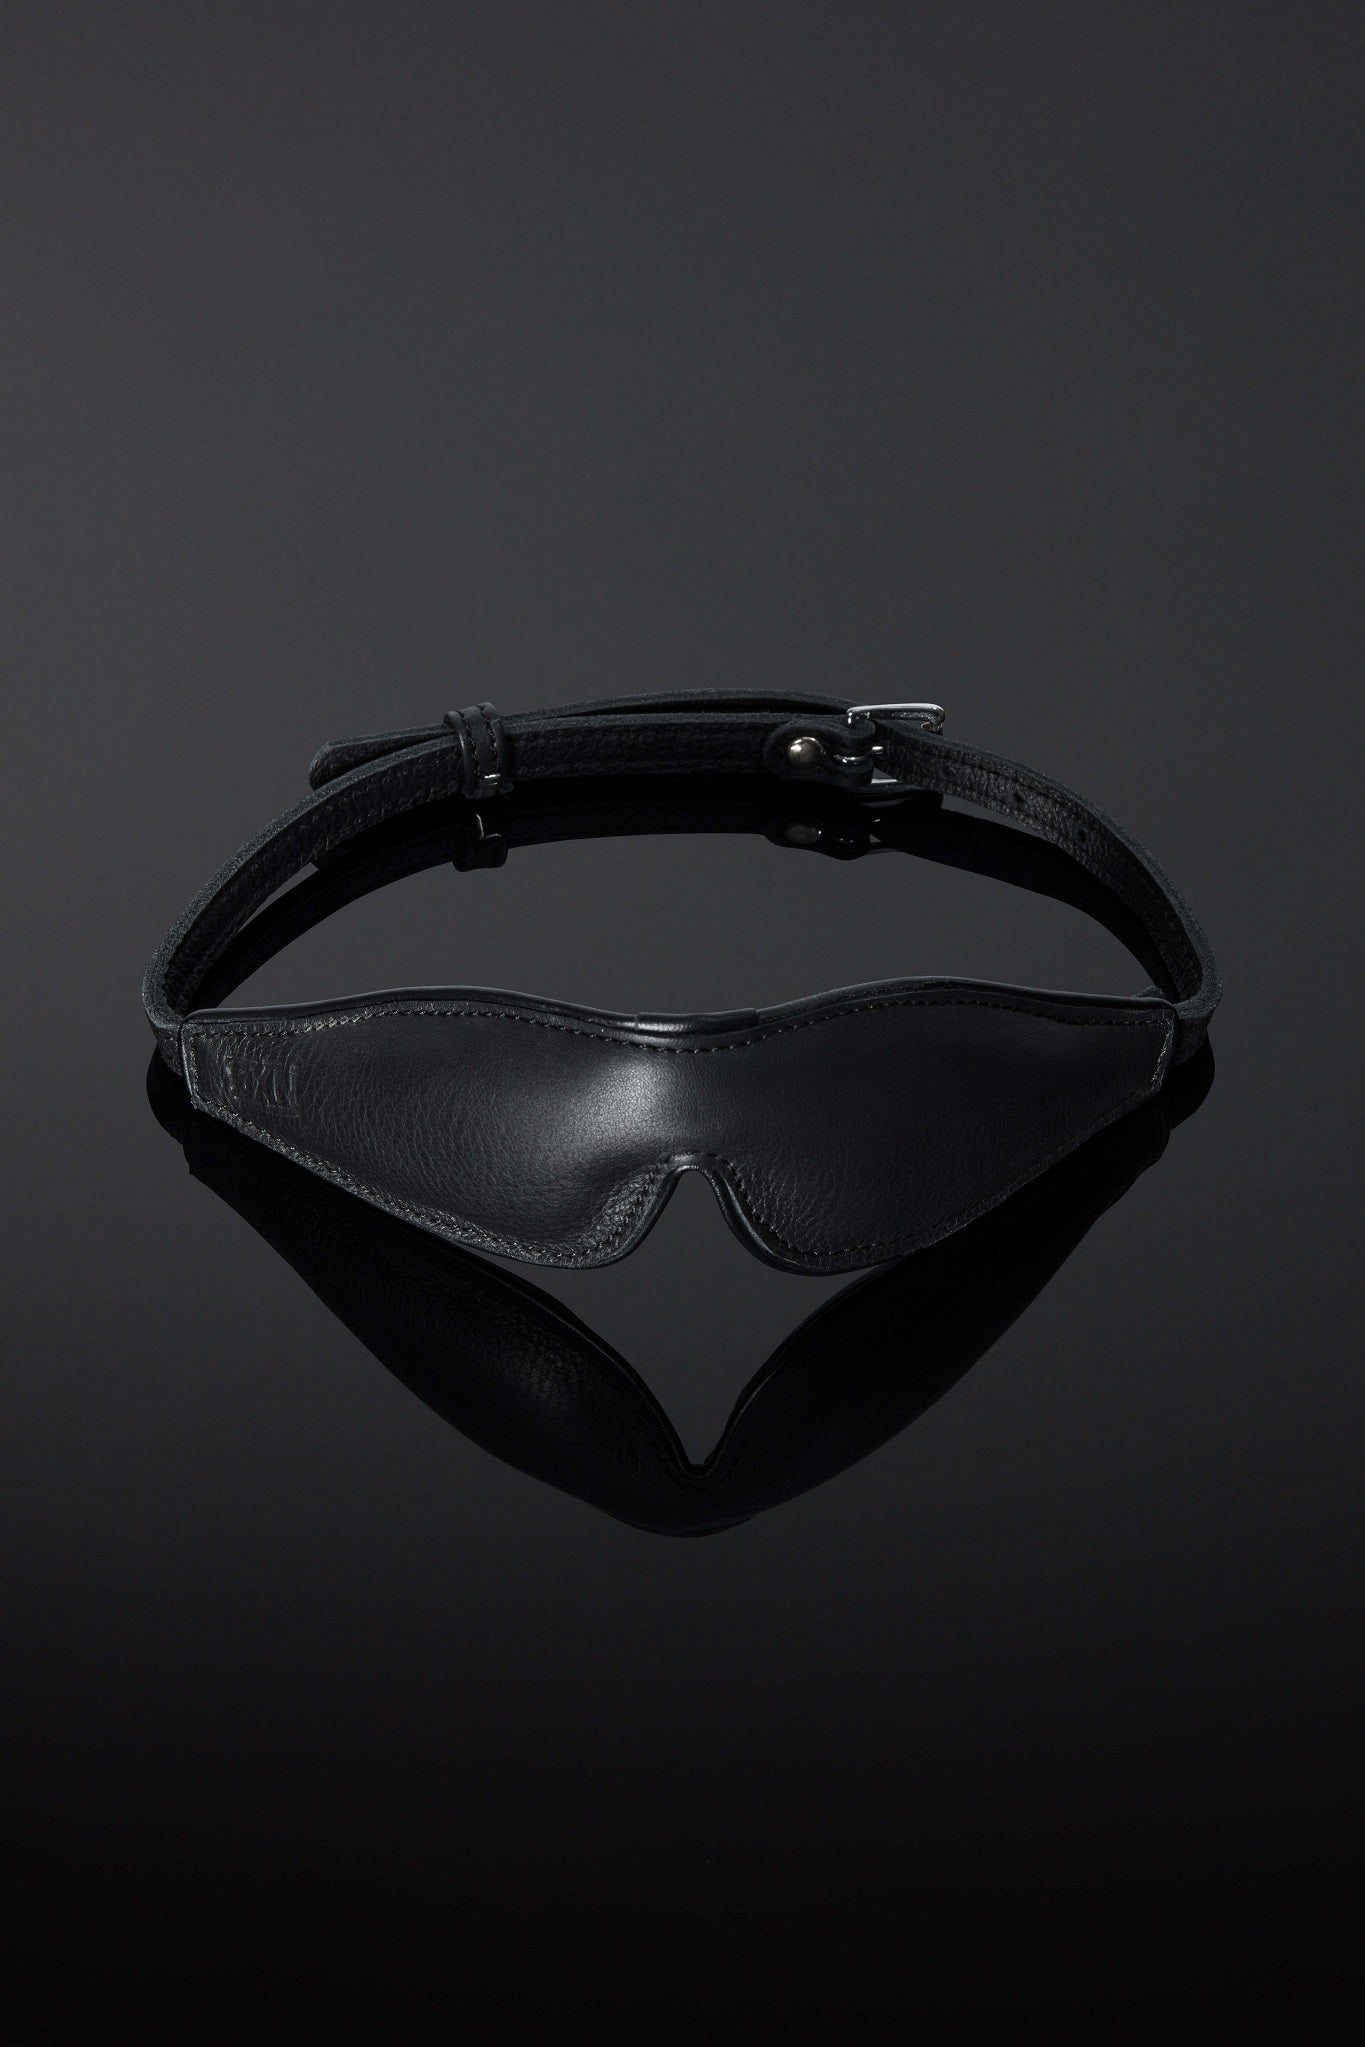 House of SXN Noctis Mask Blindfold 1